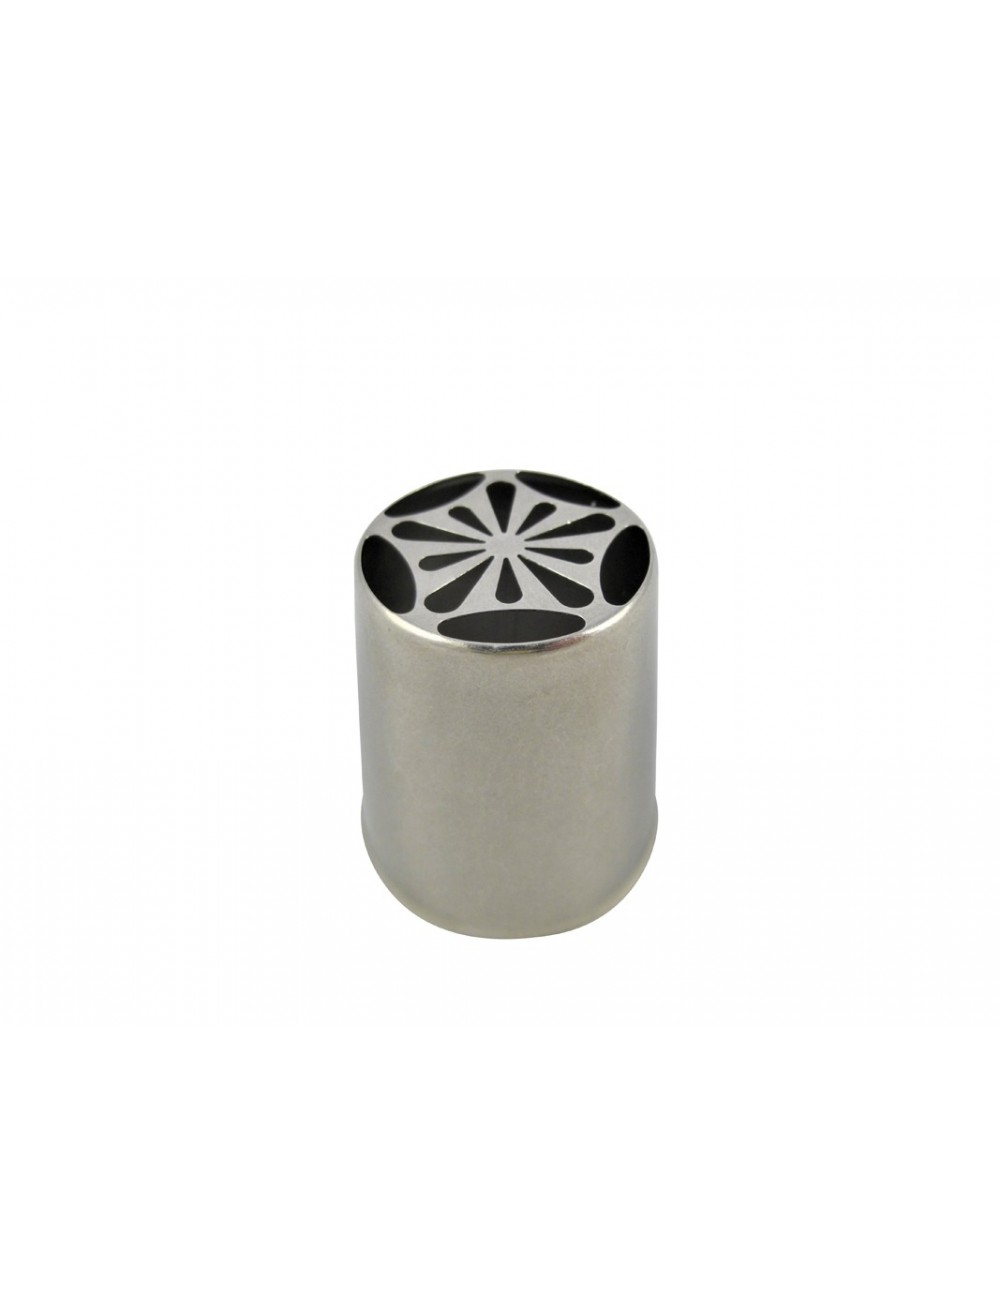 FLOWER NOZZLE - STAINLESS STEEL